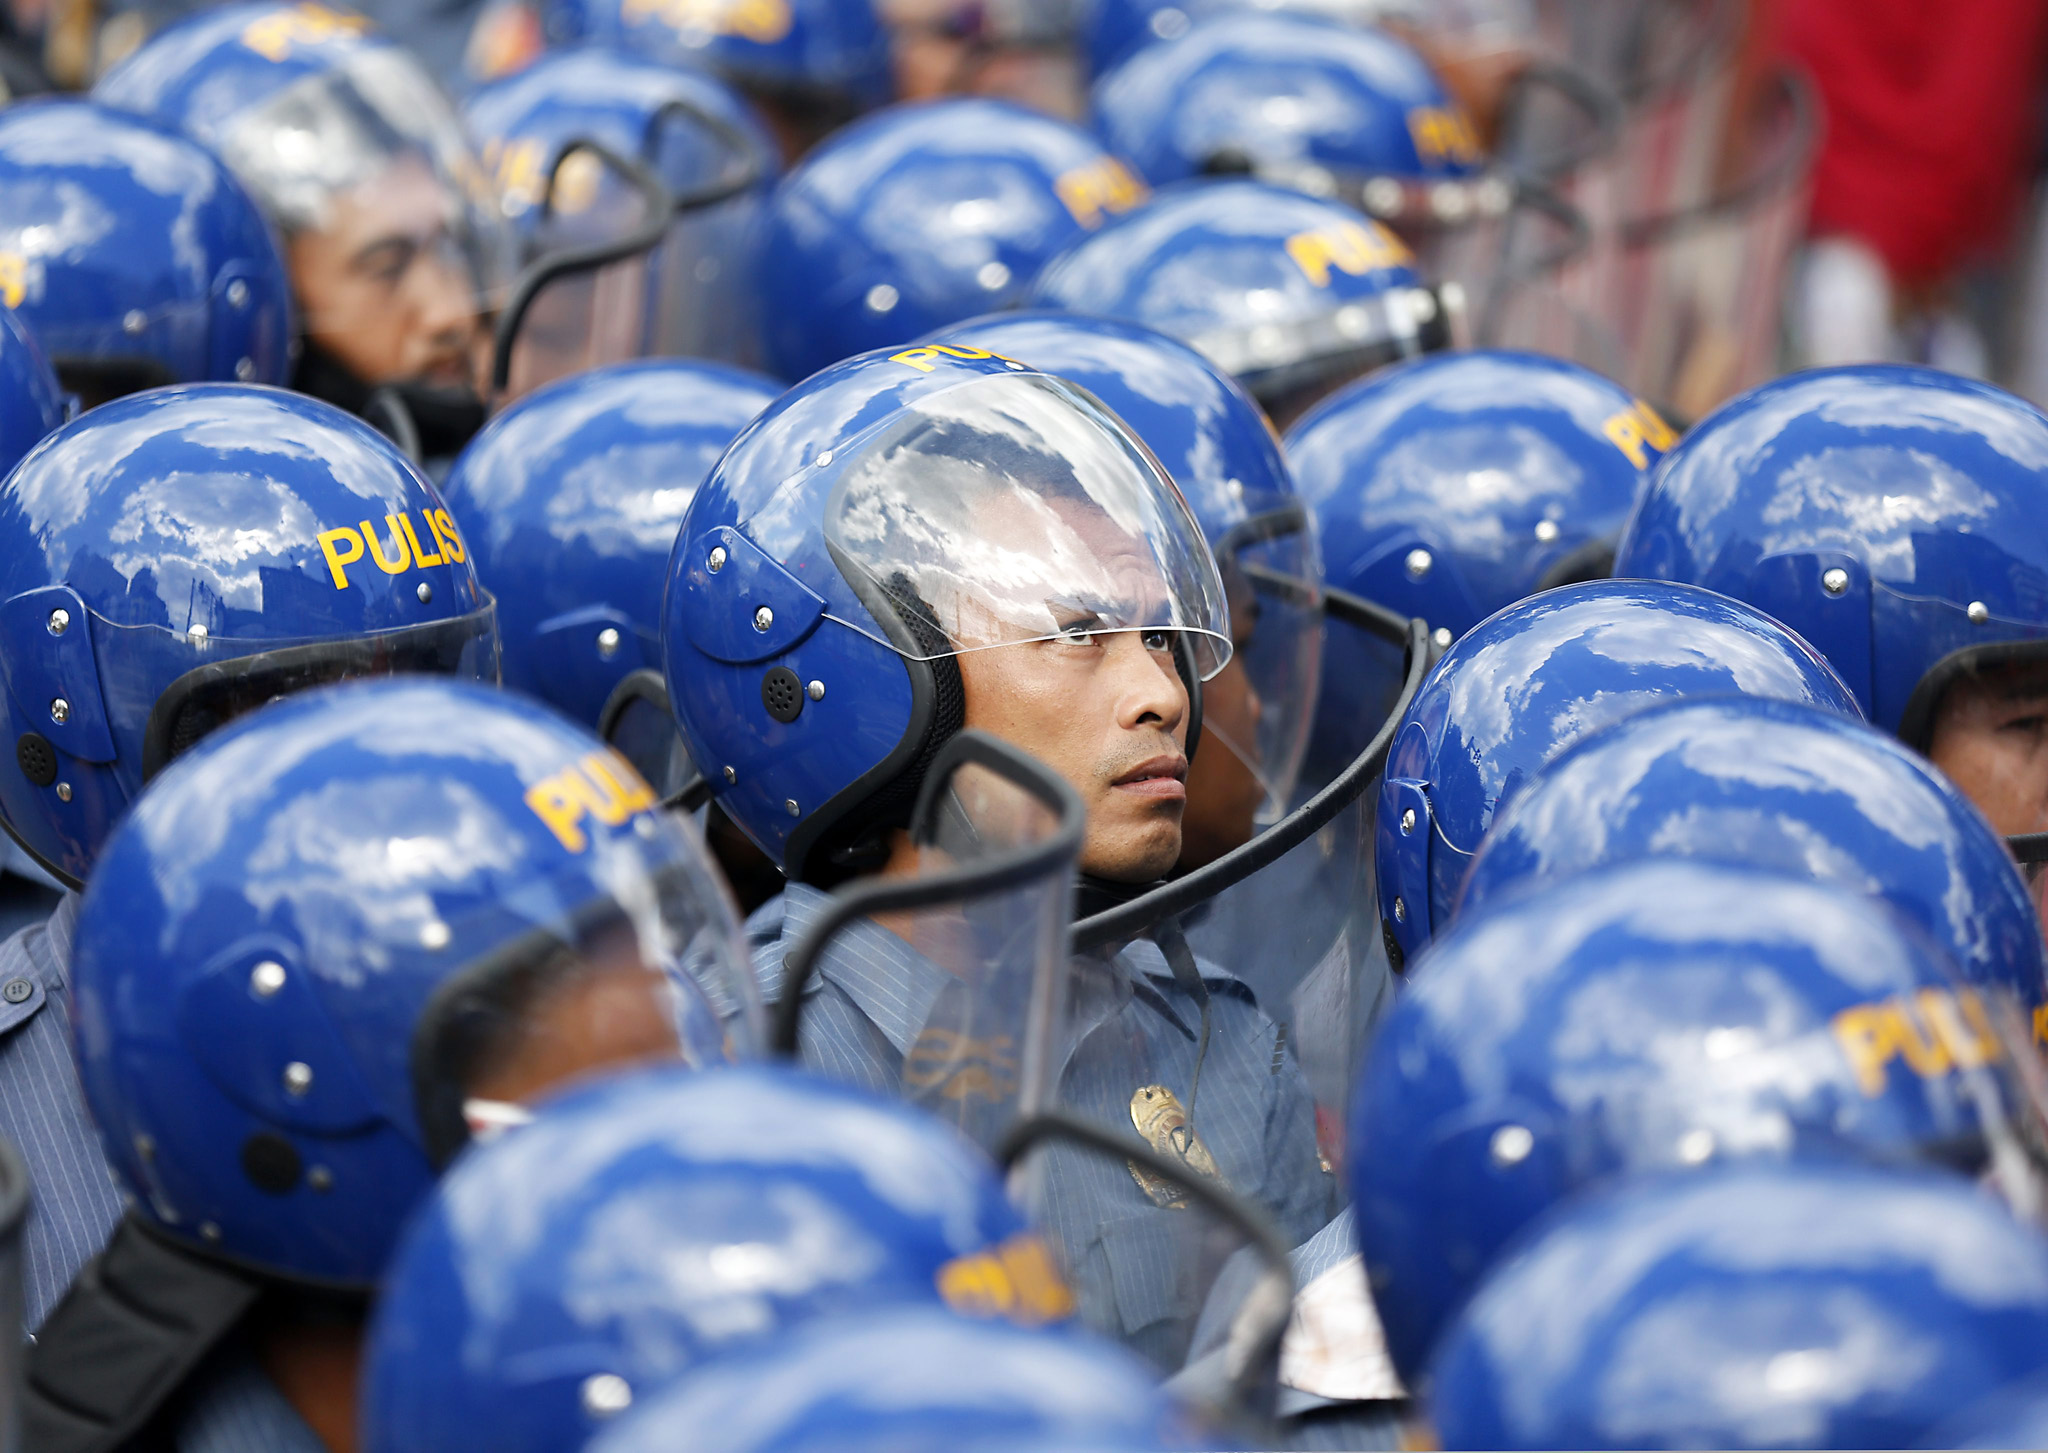 Protest against the APEC 2015 in Manila...epa05028990 A Filipino boy runs in front of a line of riot police officers during a protest rally at a street in Manila, Philippines, 17 November 2015. Philippine security forces were on high alert in the capital as leaders from Asia and the Pacific region began to arrive for the Asia-Pacific Economic Cooperation (APEC) summit just days after the deadly terrorist attacks in France.  EPA/FRANCIS R. MALASIG